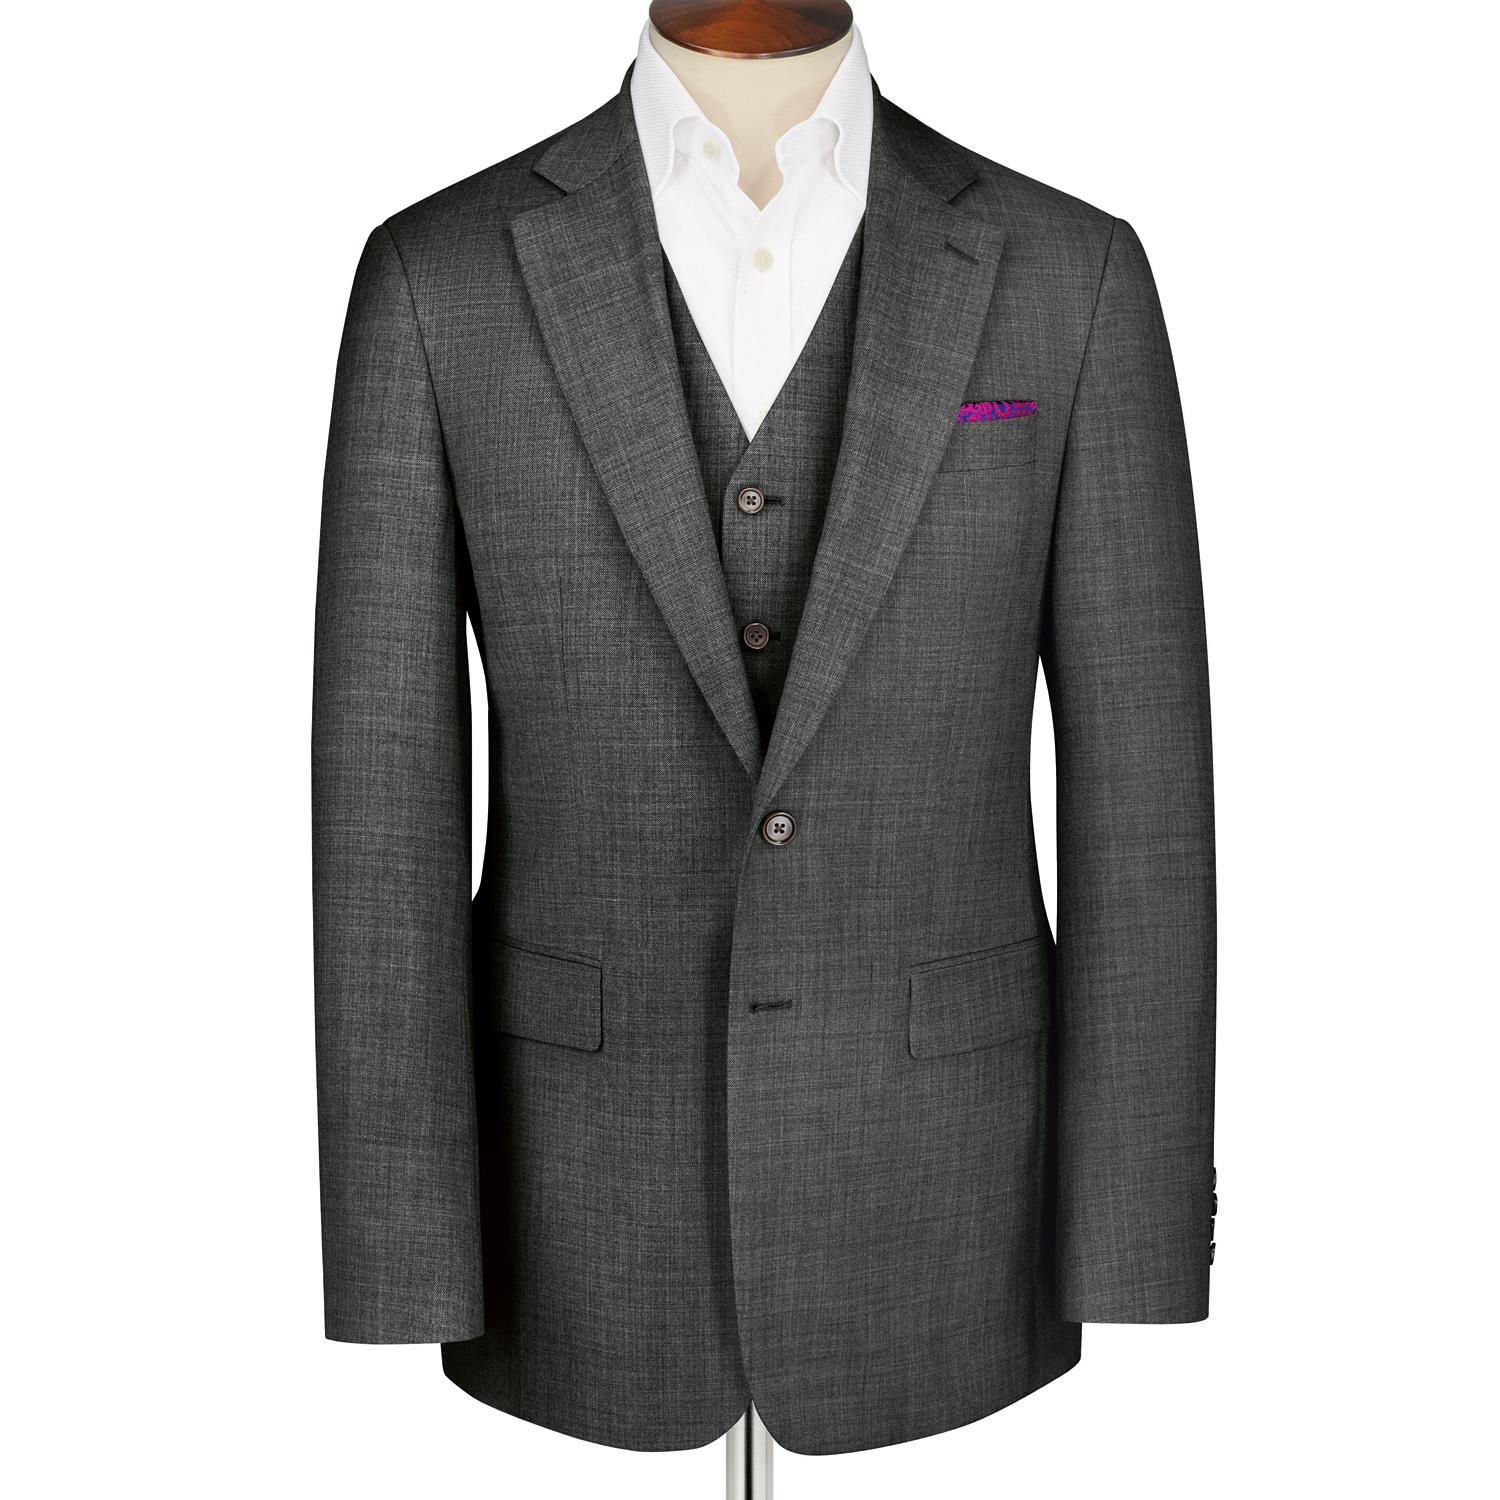 Grey Classic Fit Apsley Sharkskin Business Suit Super 100 Wool Jacket Size 44 Regular by Charles Tyr